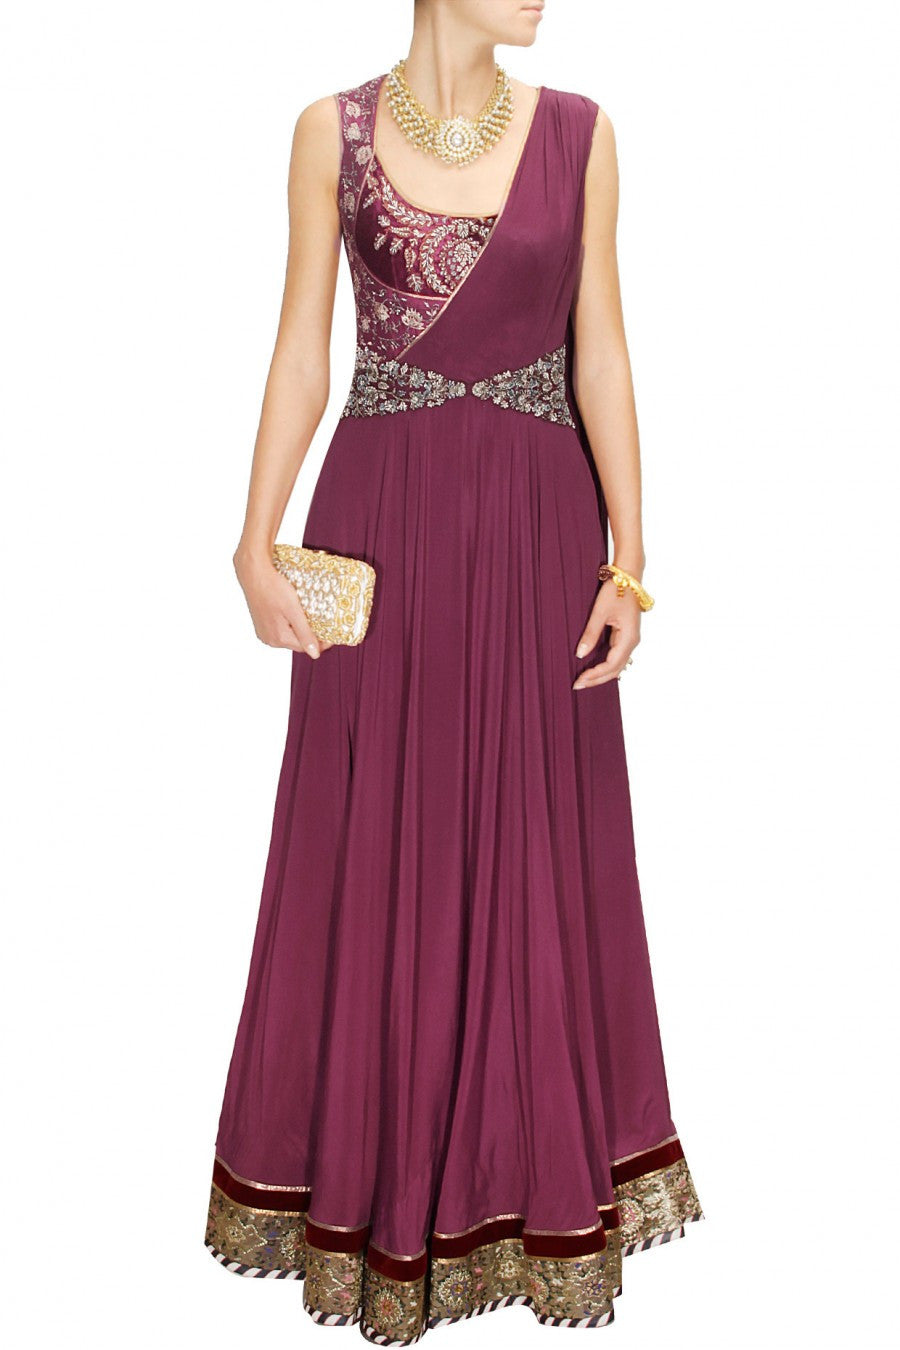 Maroon Embroidered Drape Indo Western Gown Panache Haute Couture